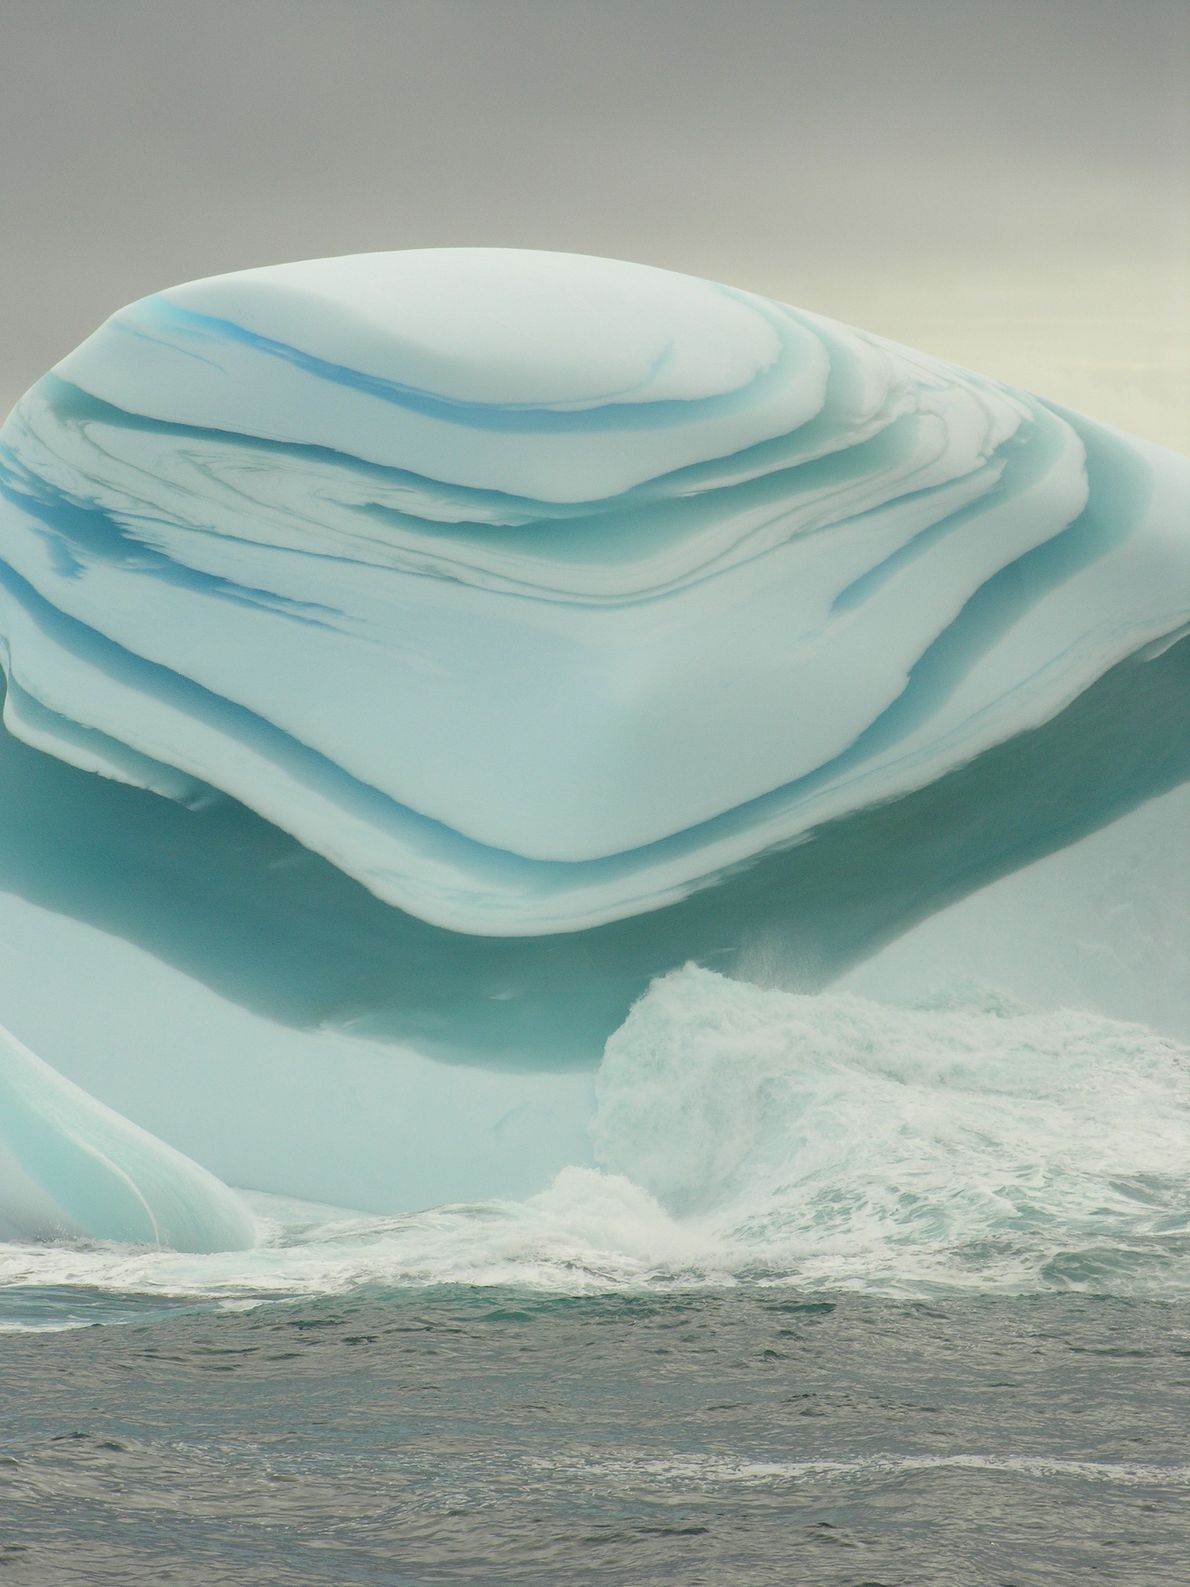 Bands of green and white ice give this jade berg an unusual appearance.